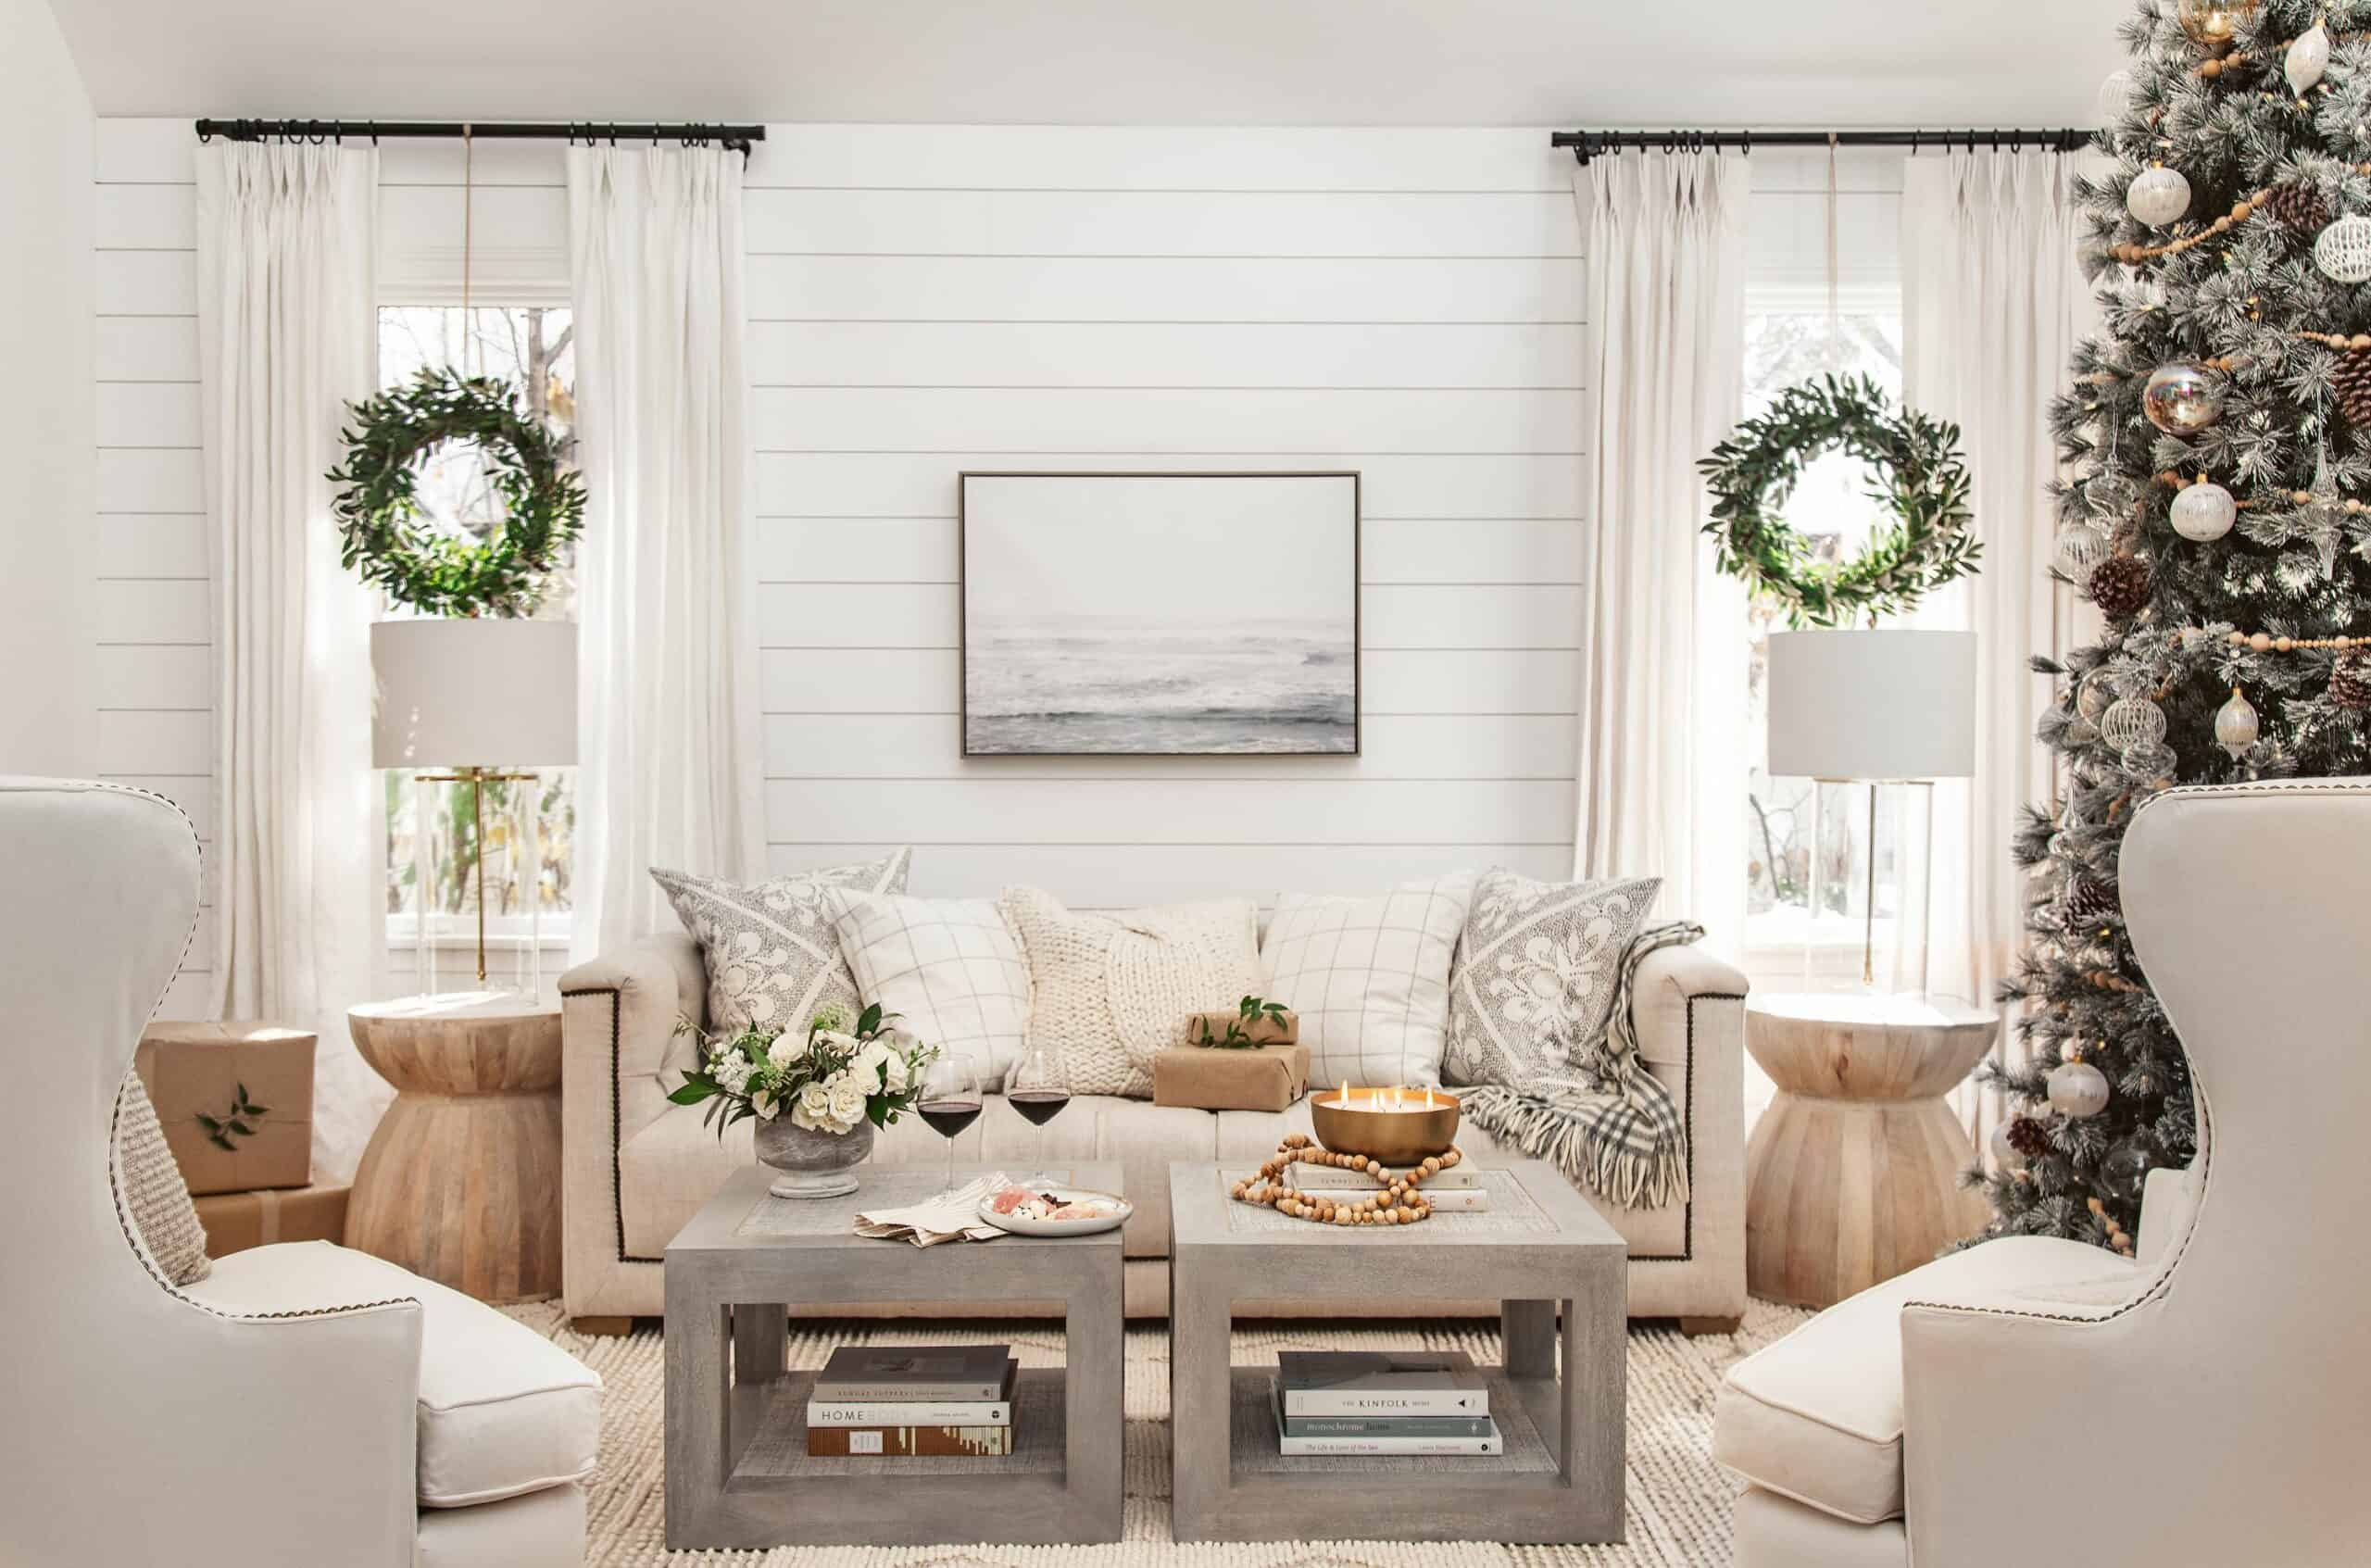 kyliefitts havnely 2019 holiday chef 23 1602739502 scaled Deck Your Home with These Creative Christmas Décor